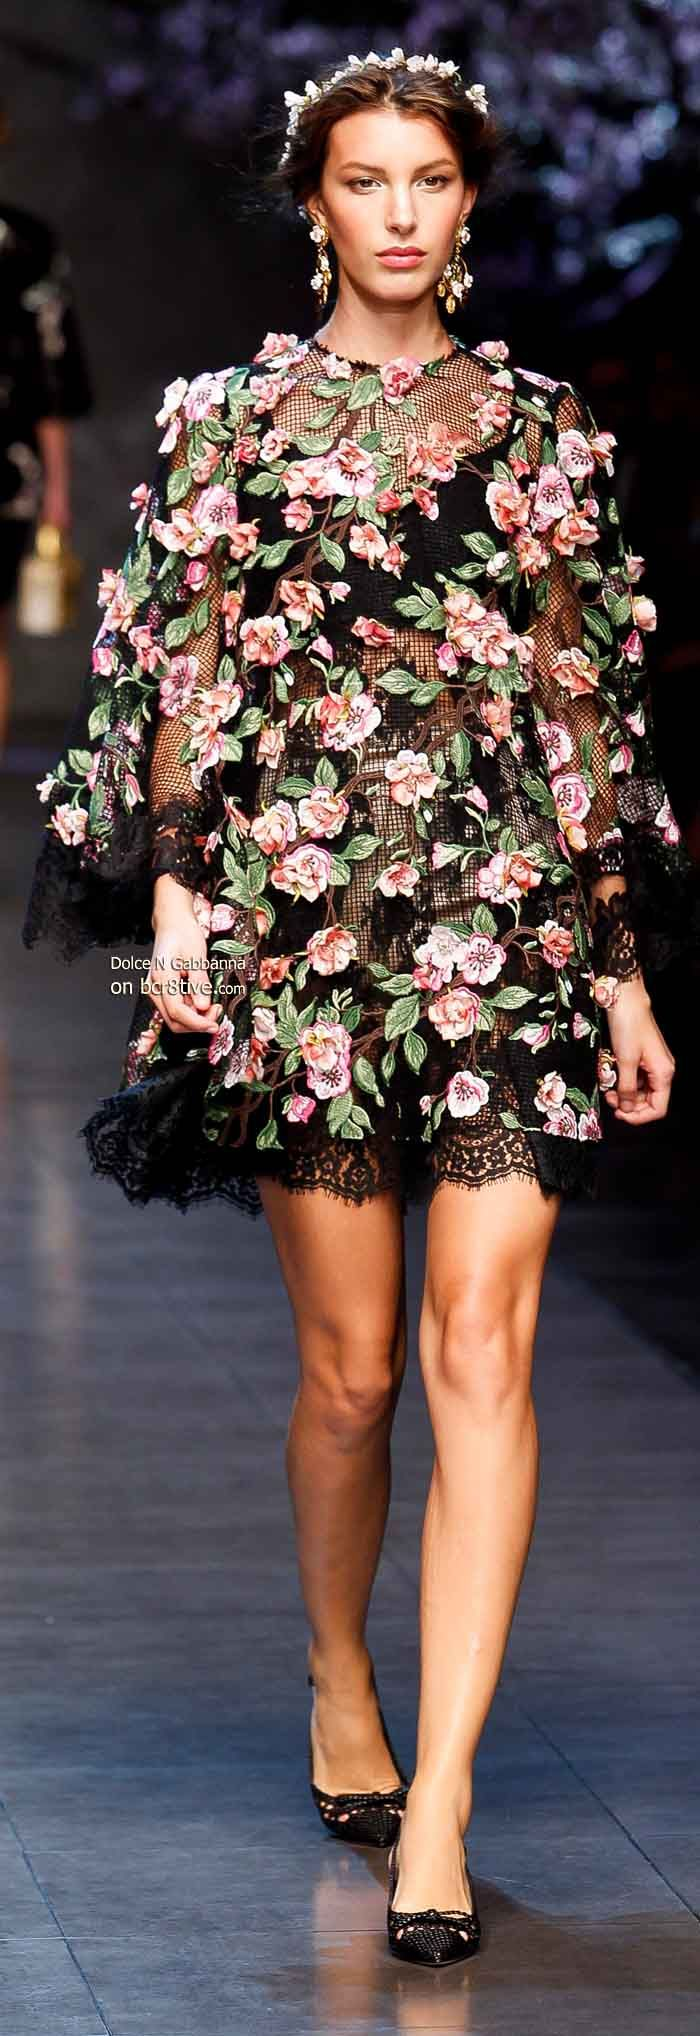 Dolce & Gabbana Spring 2014 | The House of Beccaria